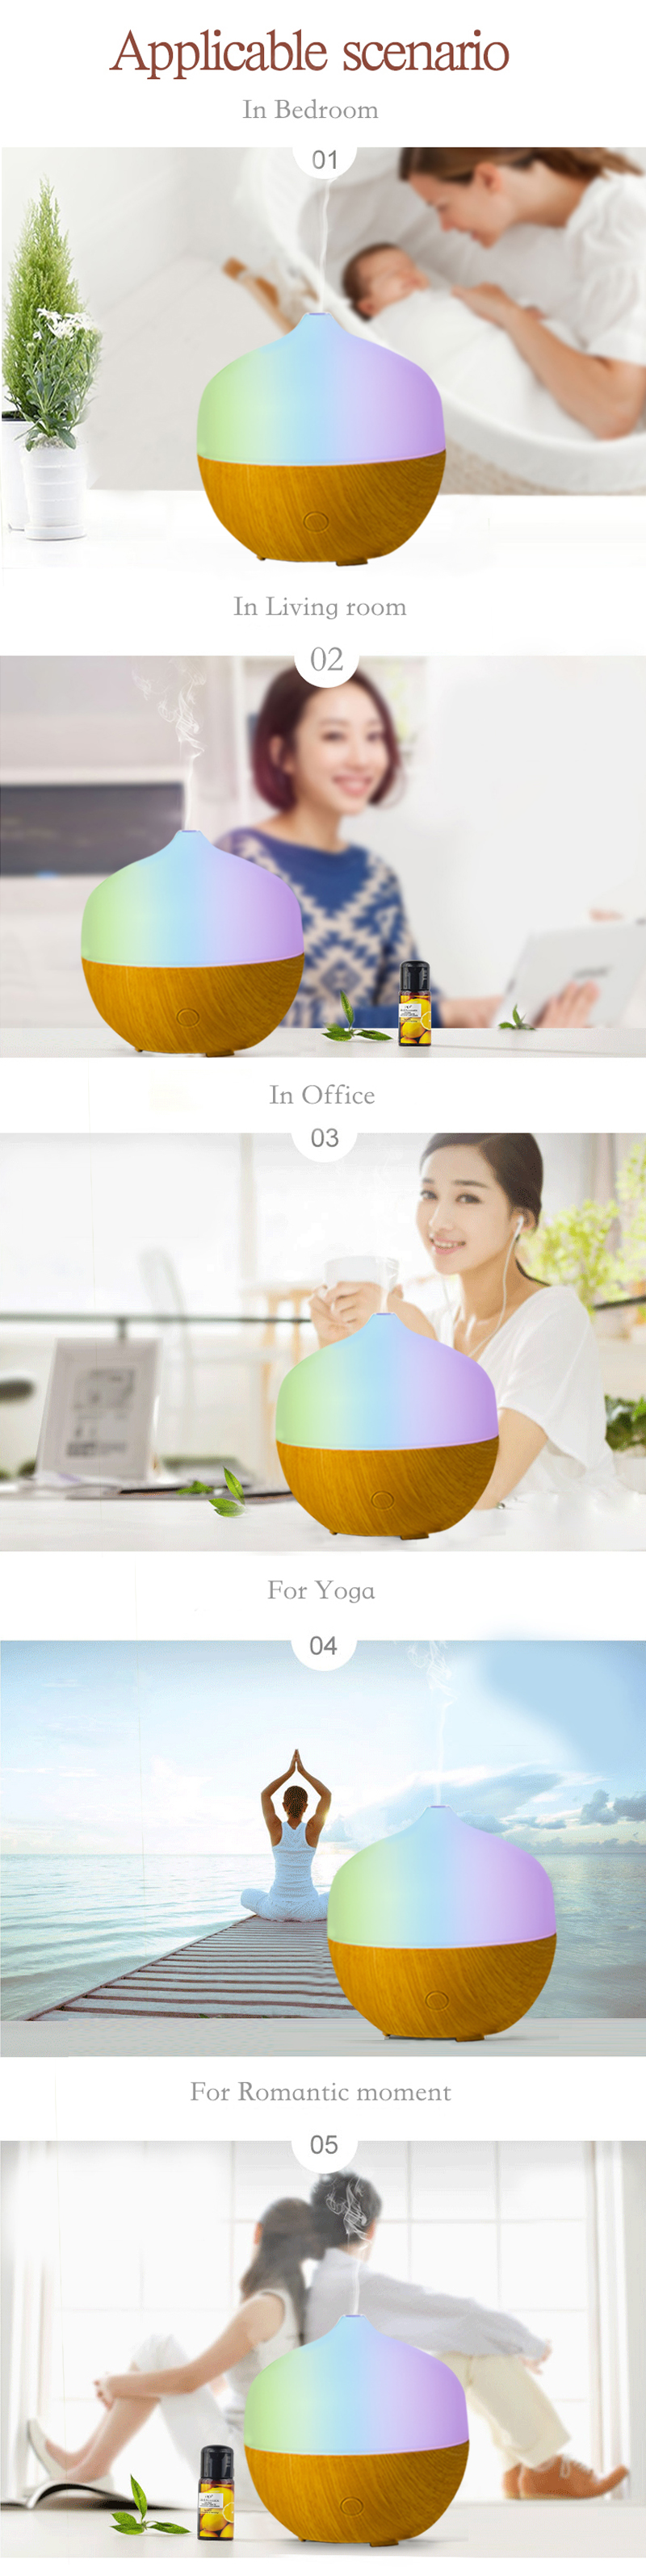 Aroma Diffuser Application